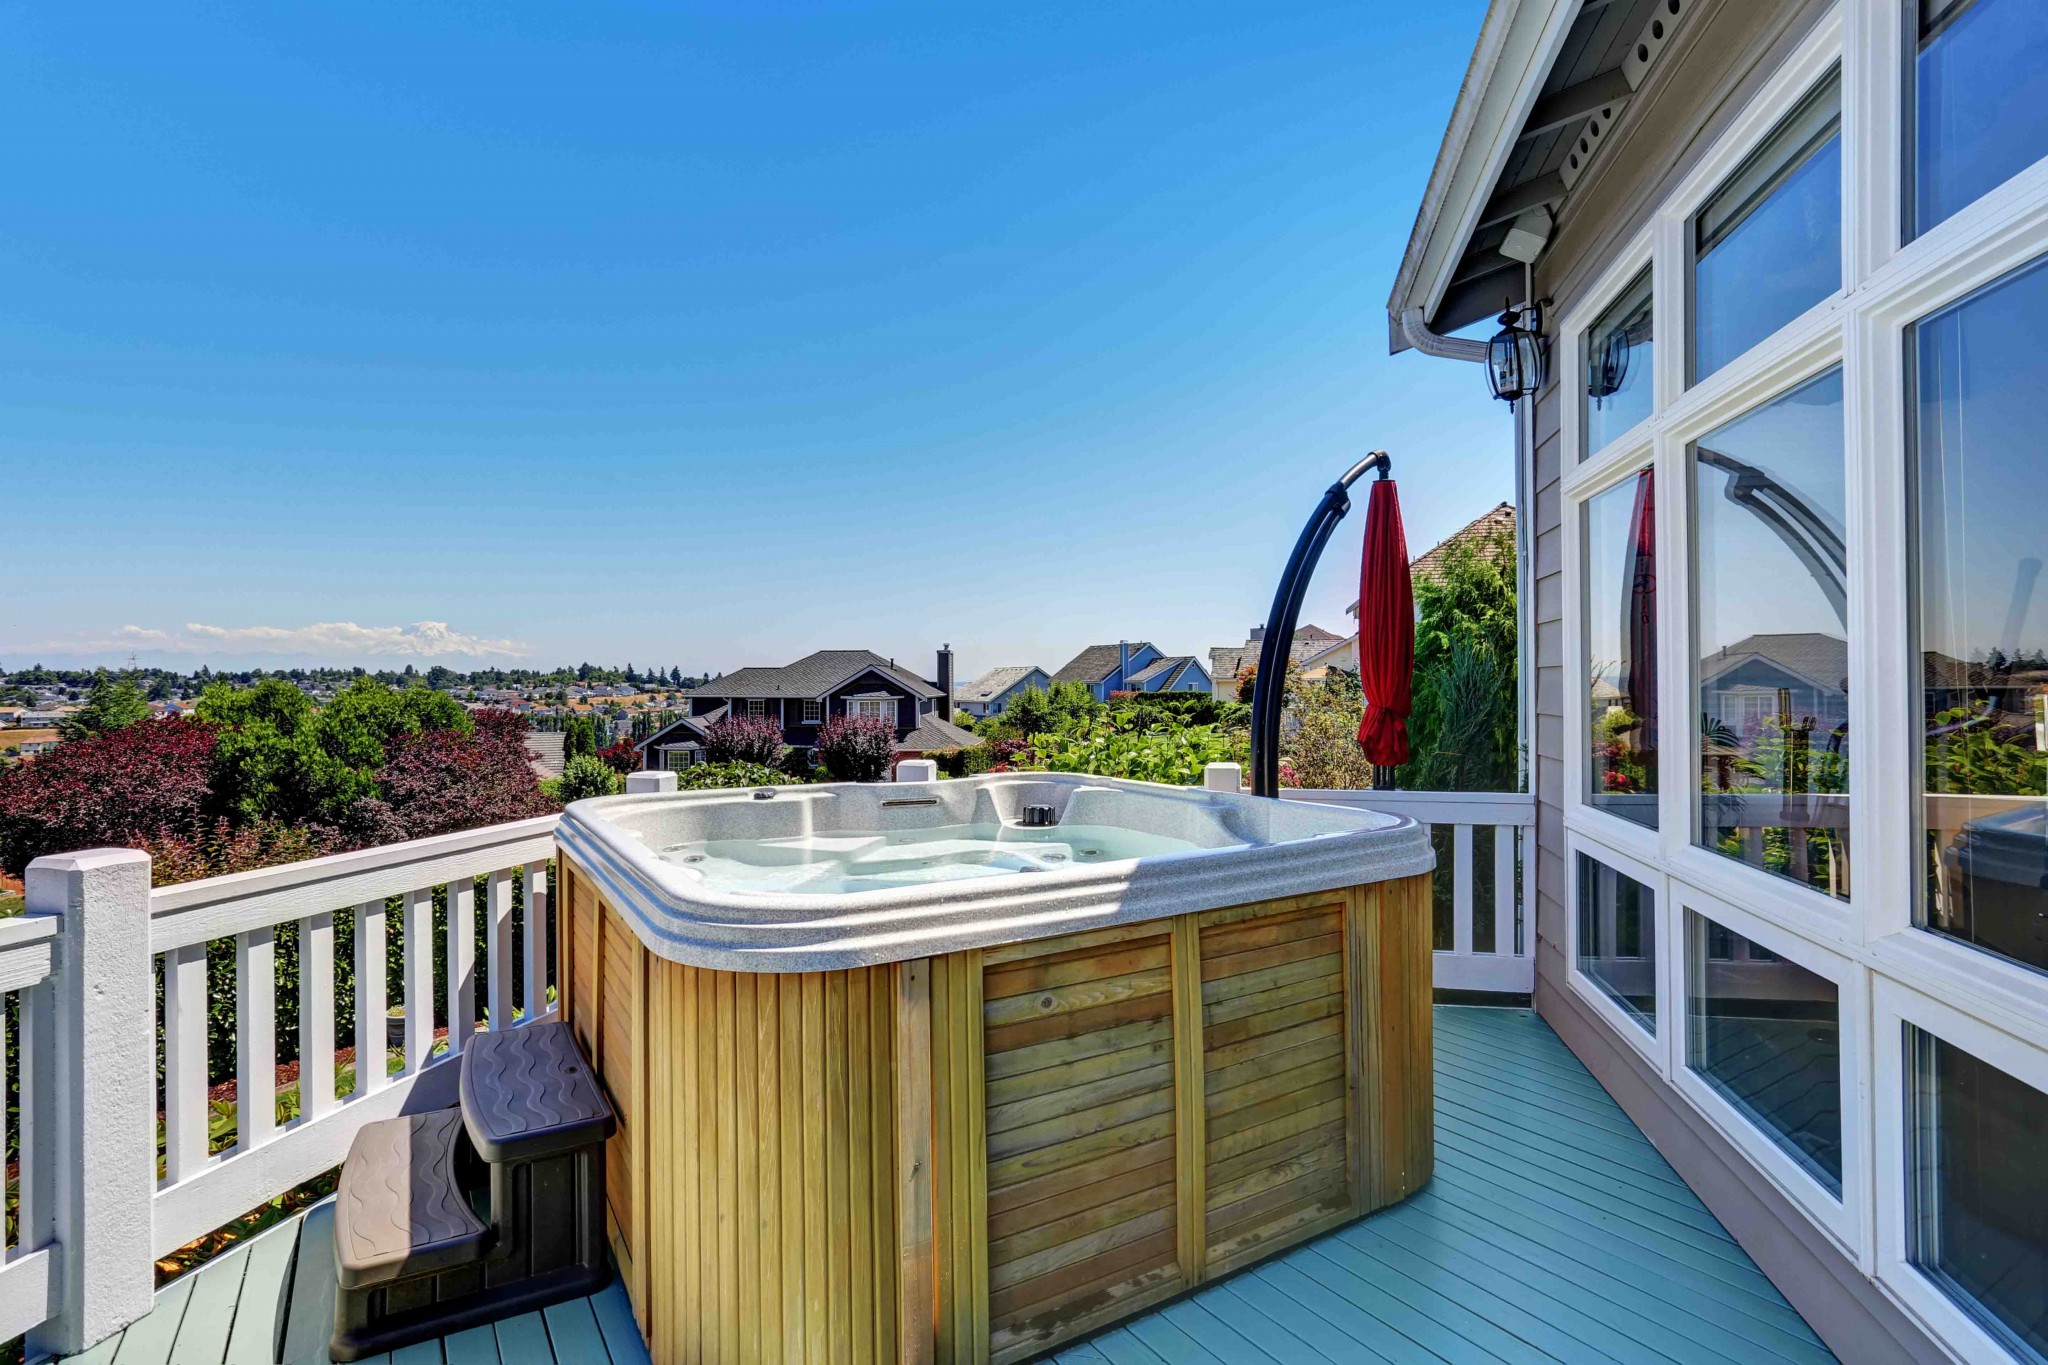 Close-up of wooden hot tub. Luxury house exterior. Blue sky background. Northwest, USA